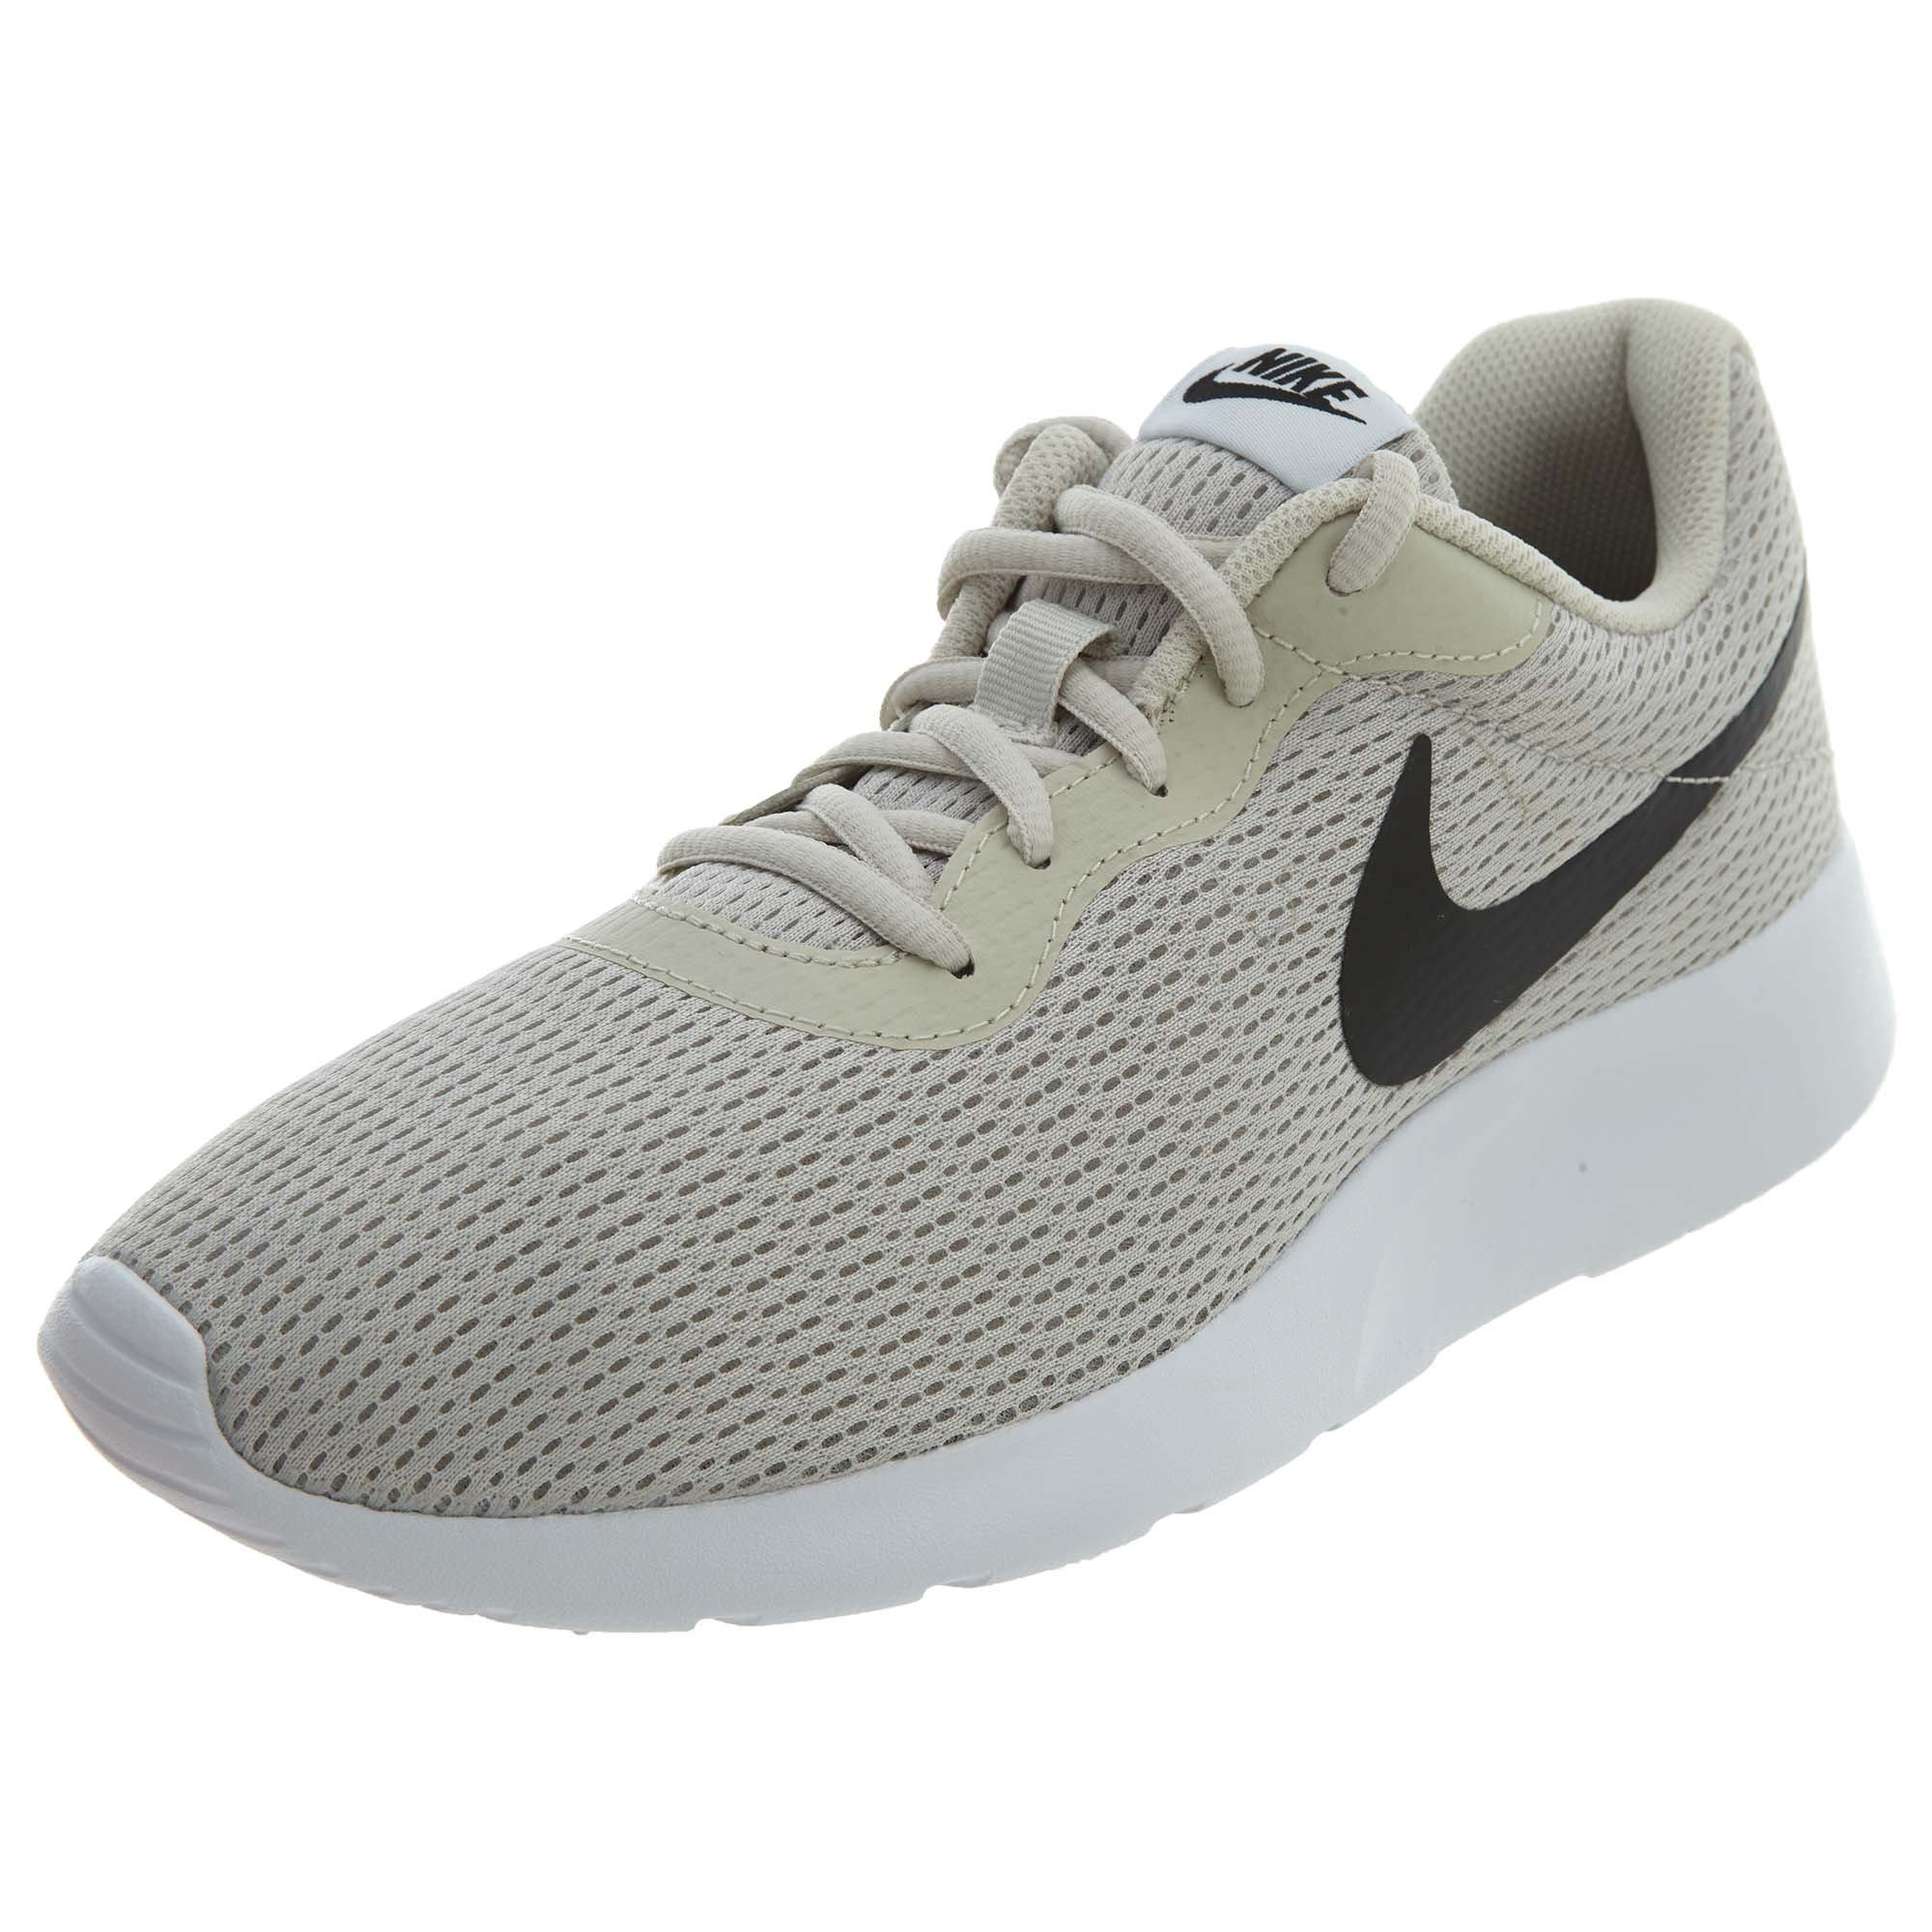 NIKE Mens 812654 Fabric Low Top Lace up, Light Bone/Black-White, Size 10.0 by NIKE